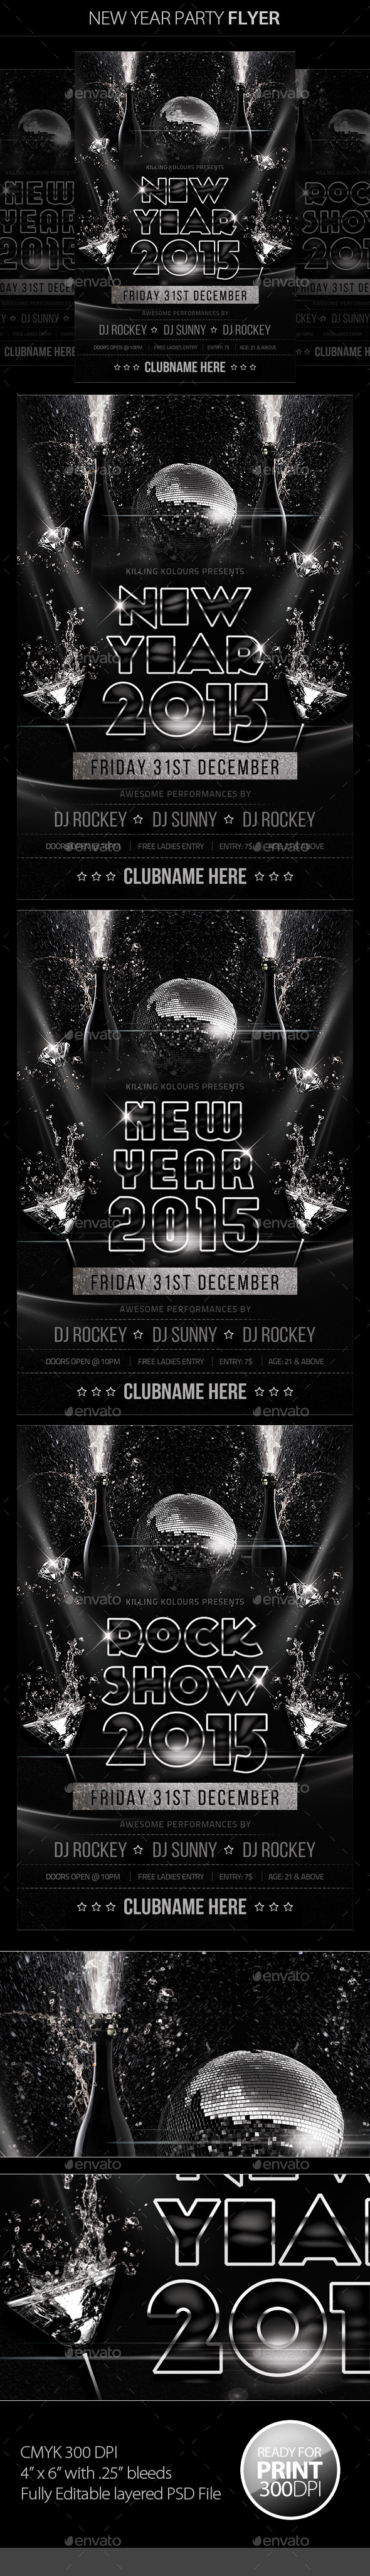 GraphicRiver New Year Party Flyer 9627999